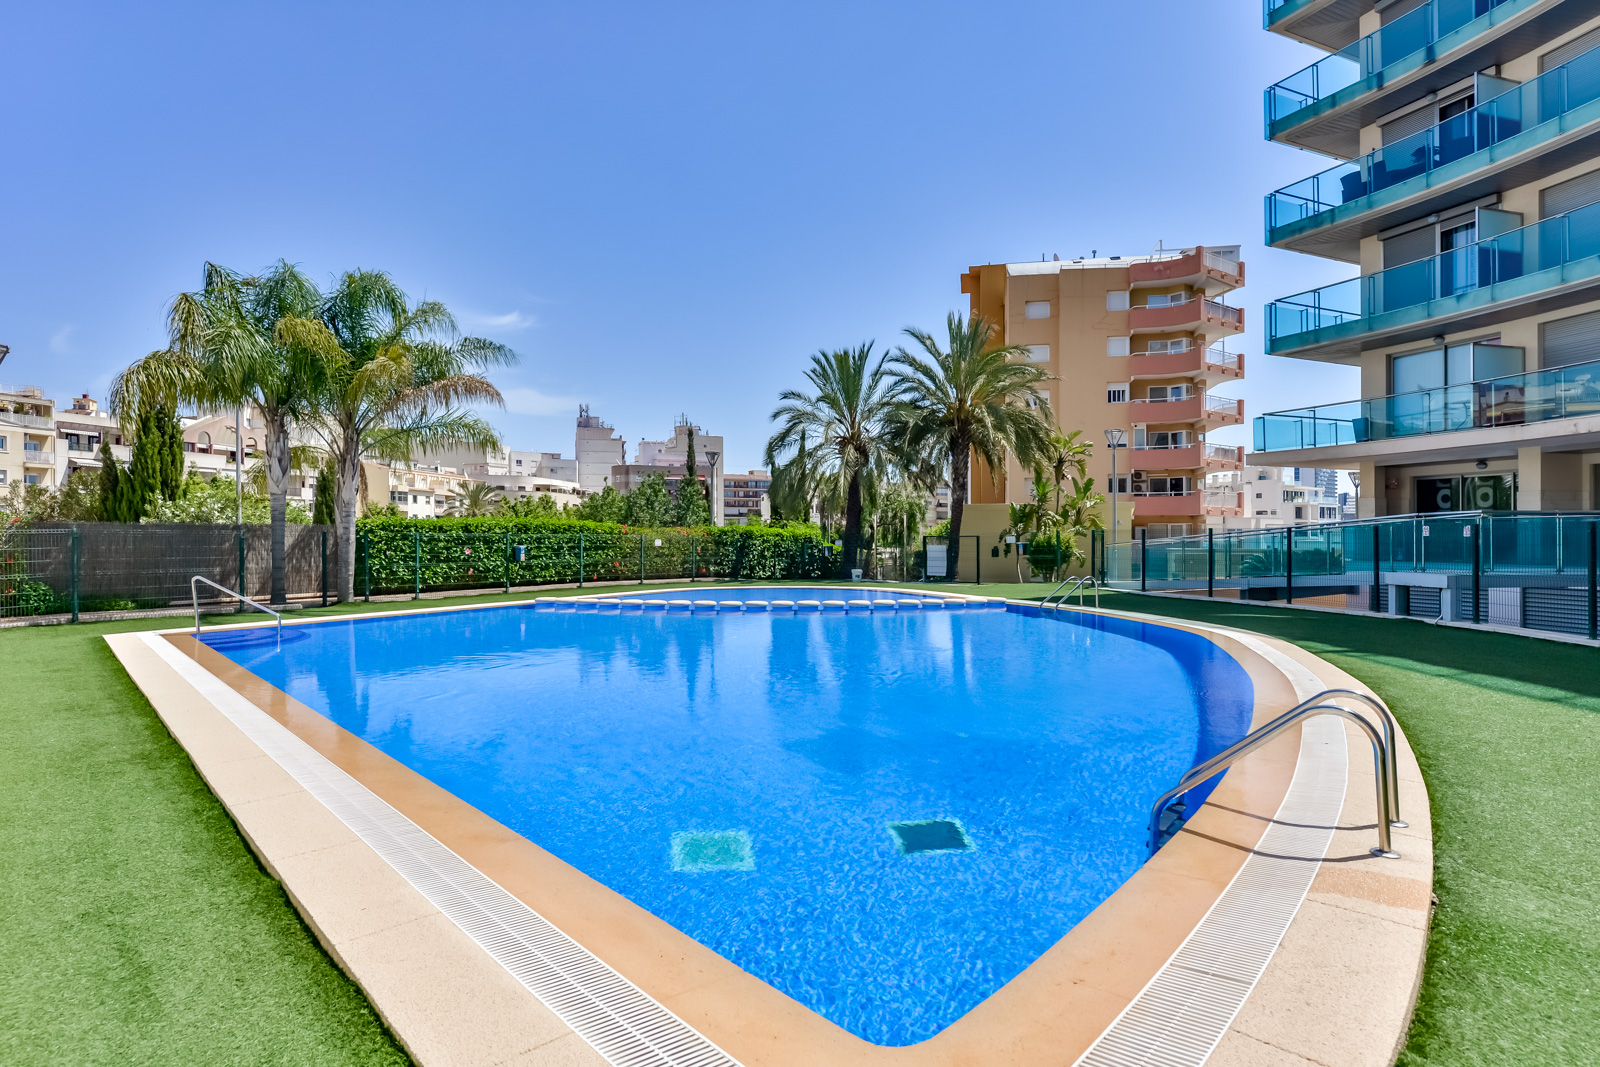 Apartamento Borumbot 26, Comfortable apartment  with communal pool in Calpe, on the Costa Blanca, Spain for 6 persons.....